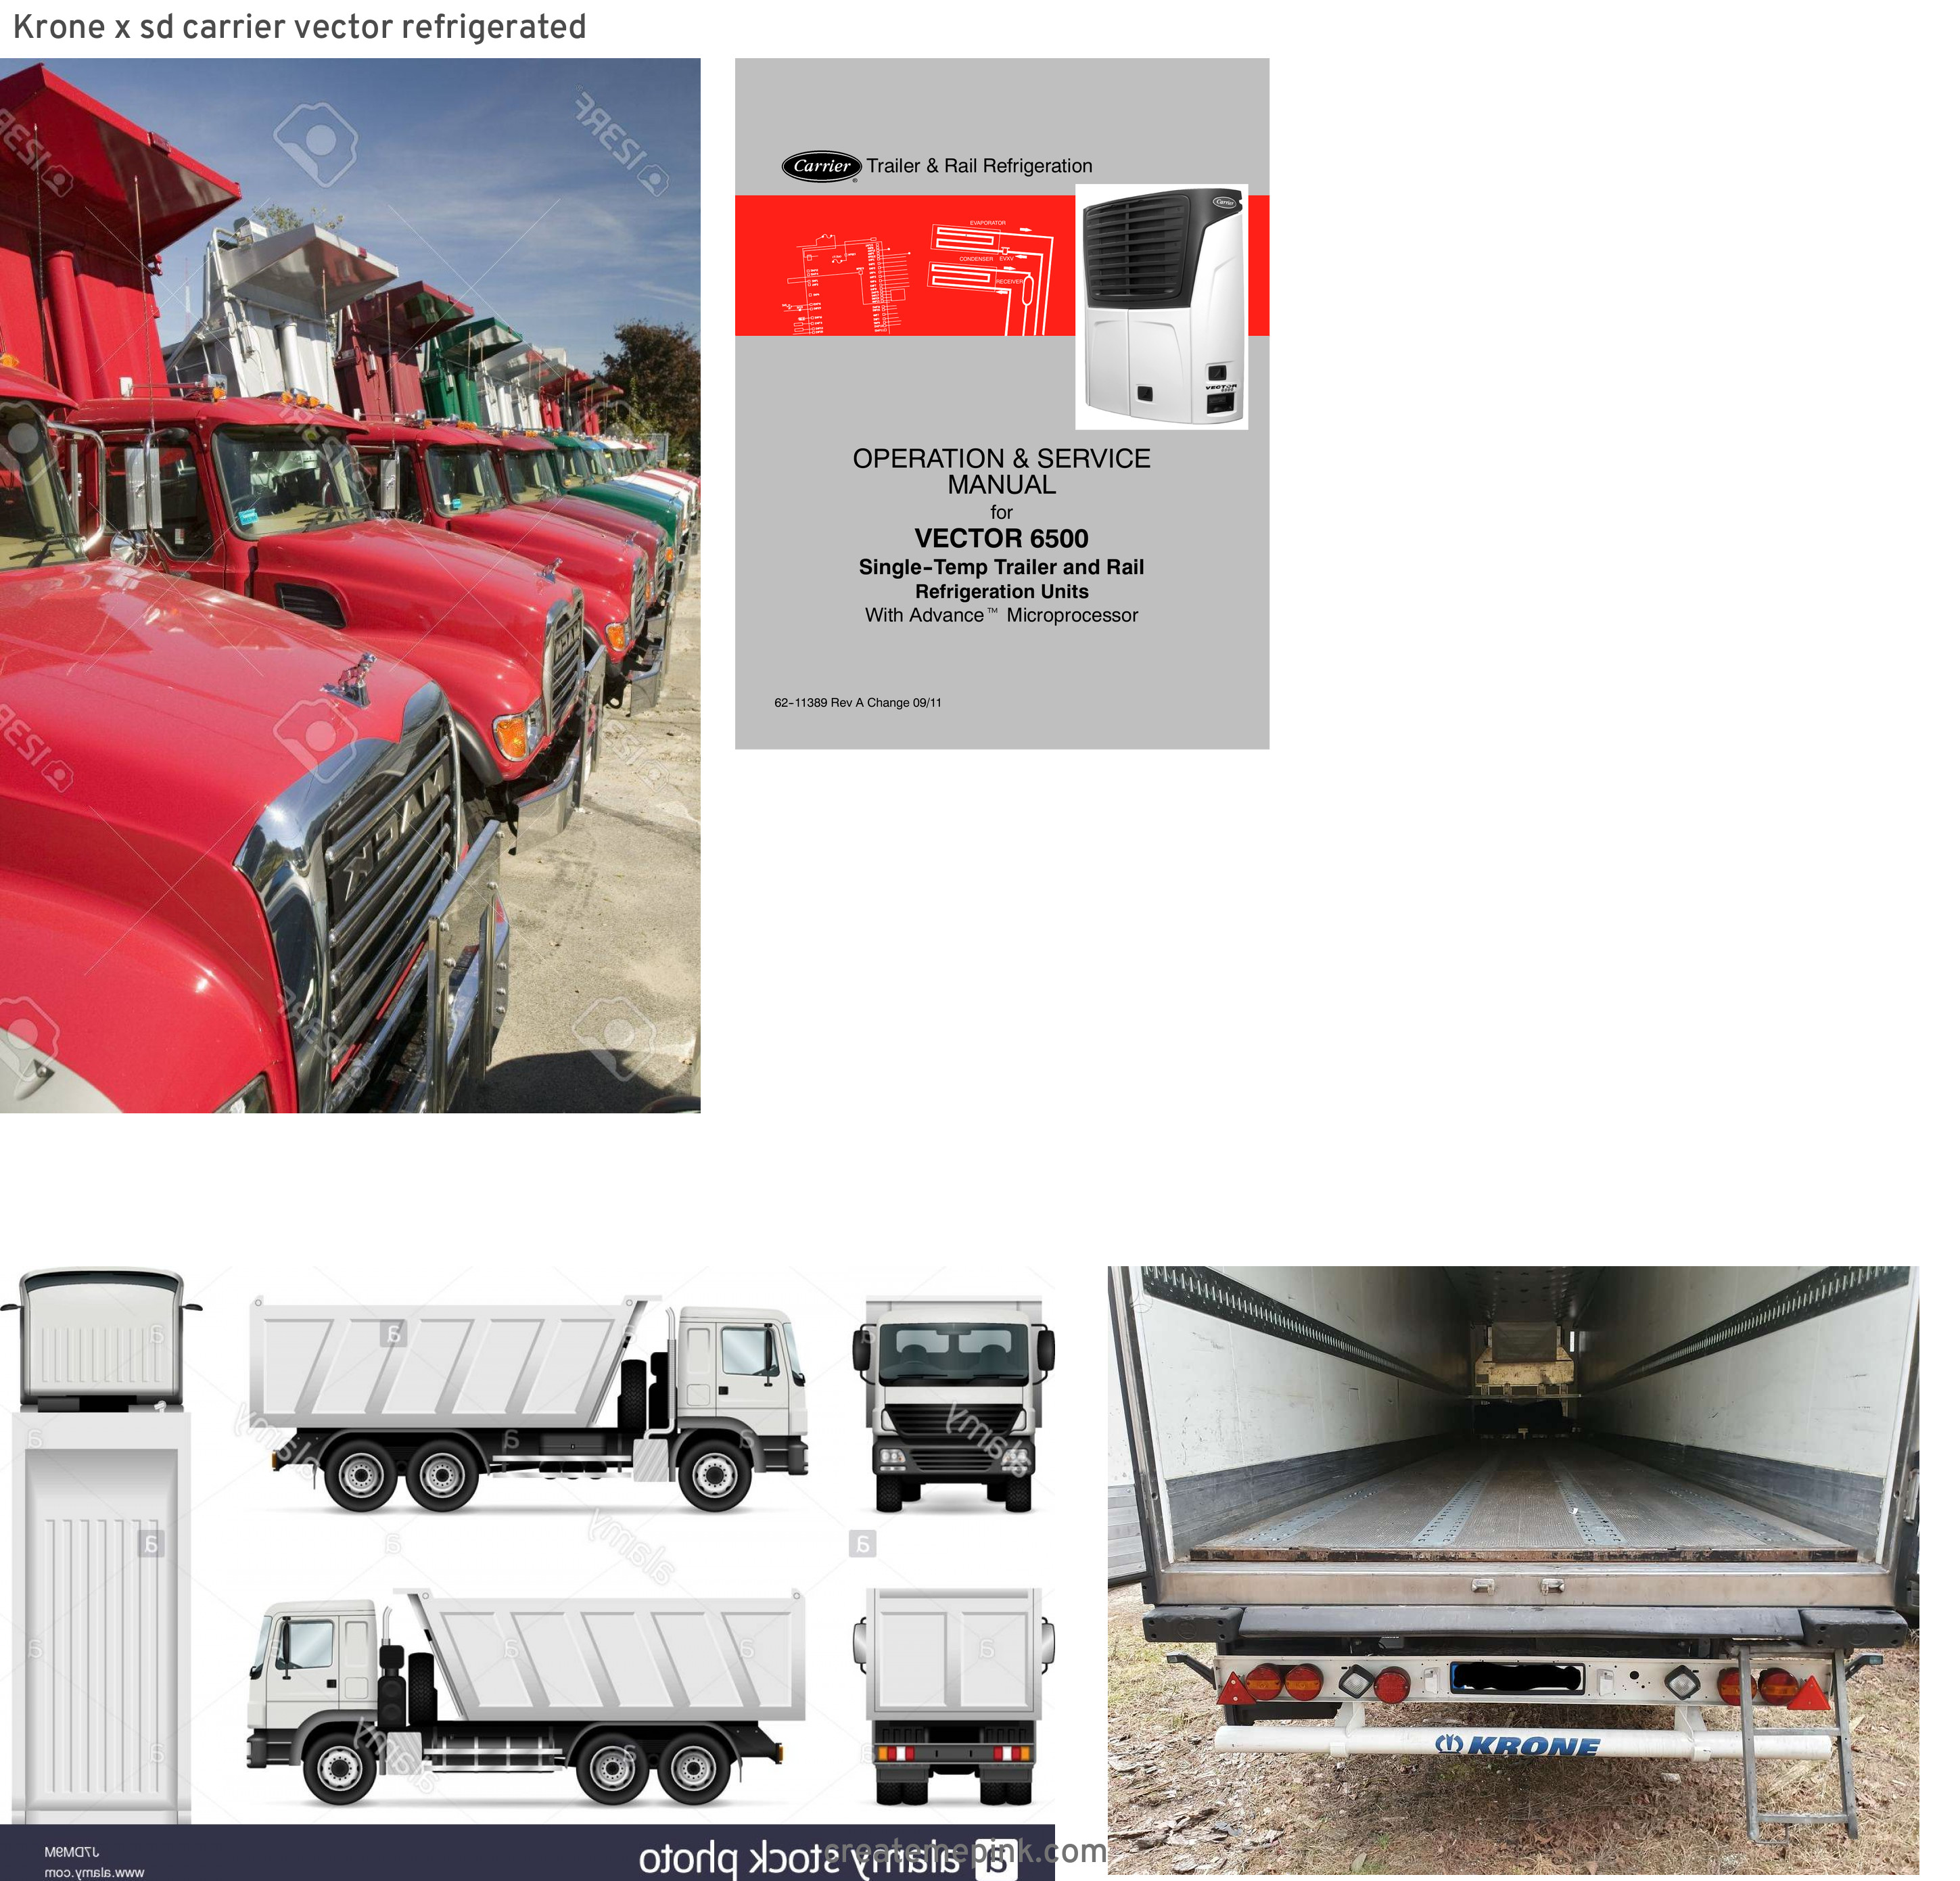 Carrier Vector 8600 Truck: Krone X Sd Carrier Vector Refrigerated